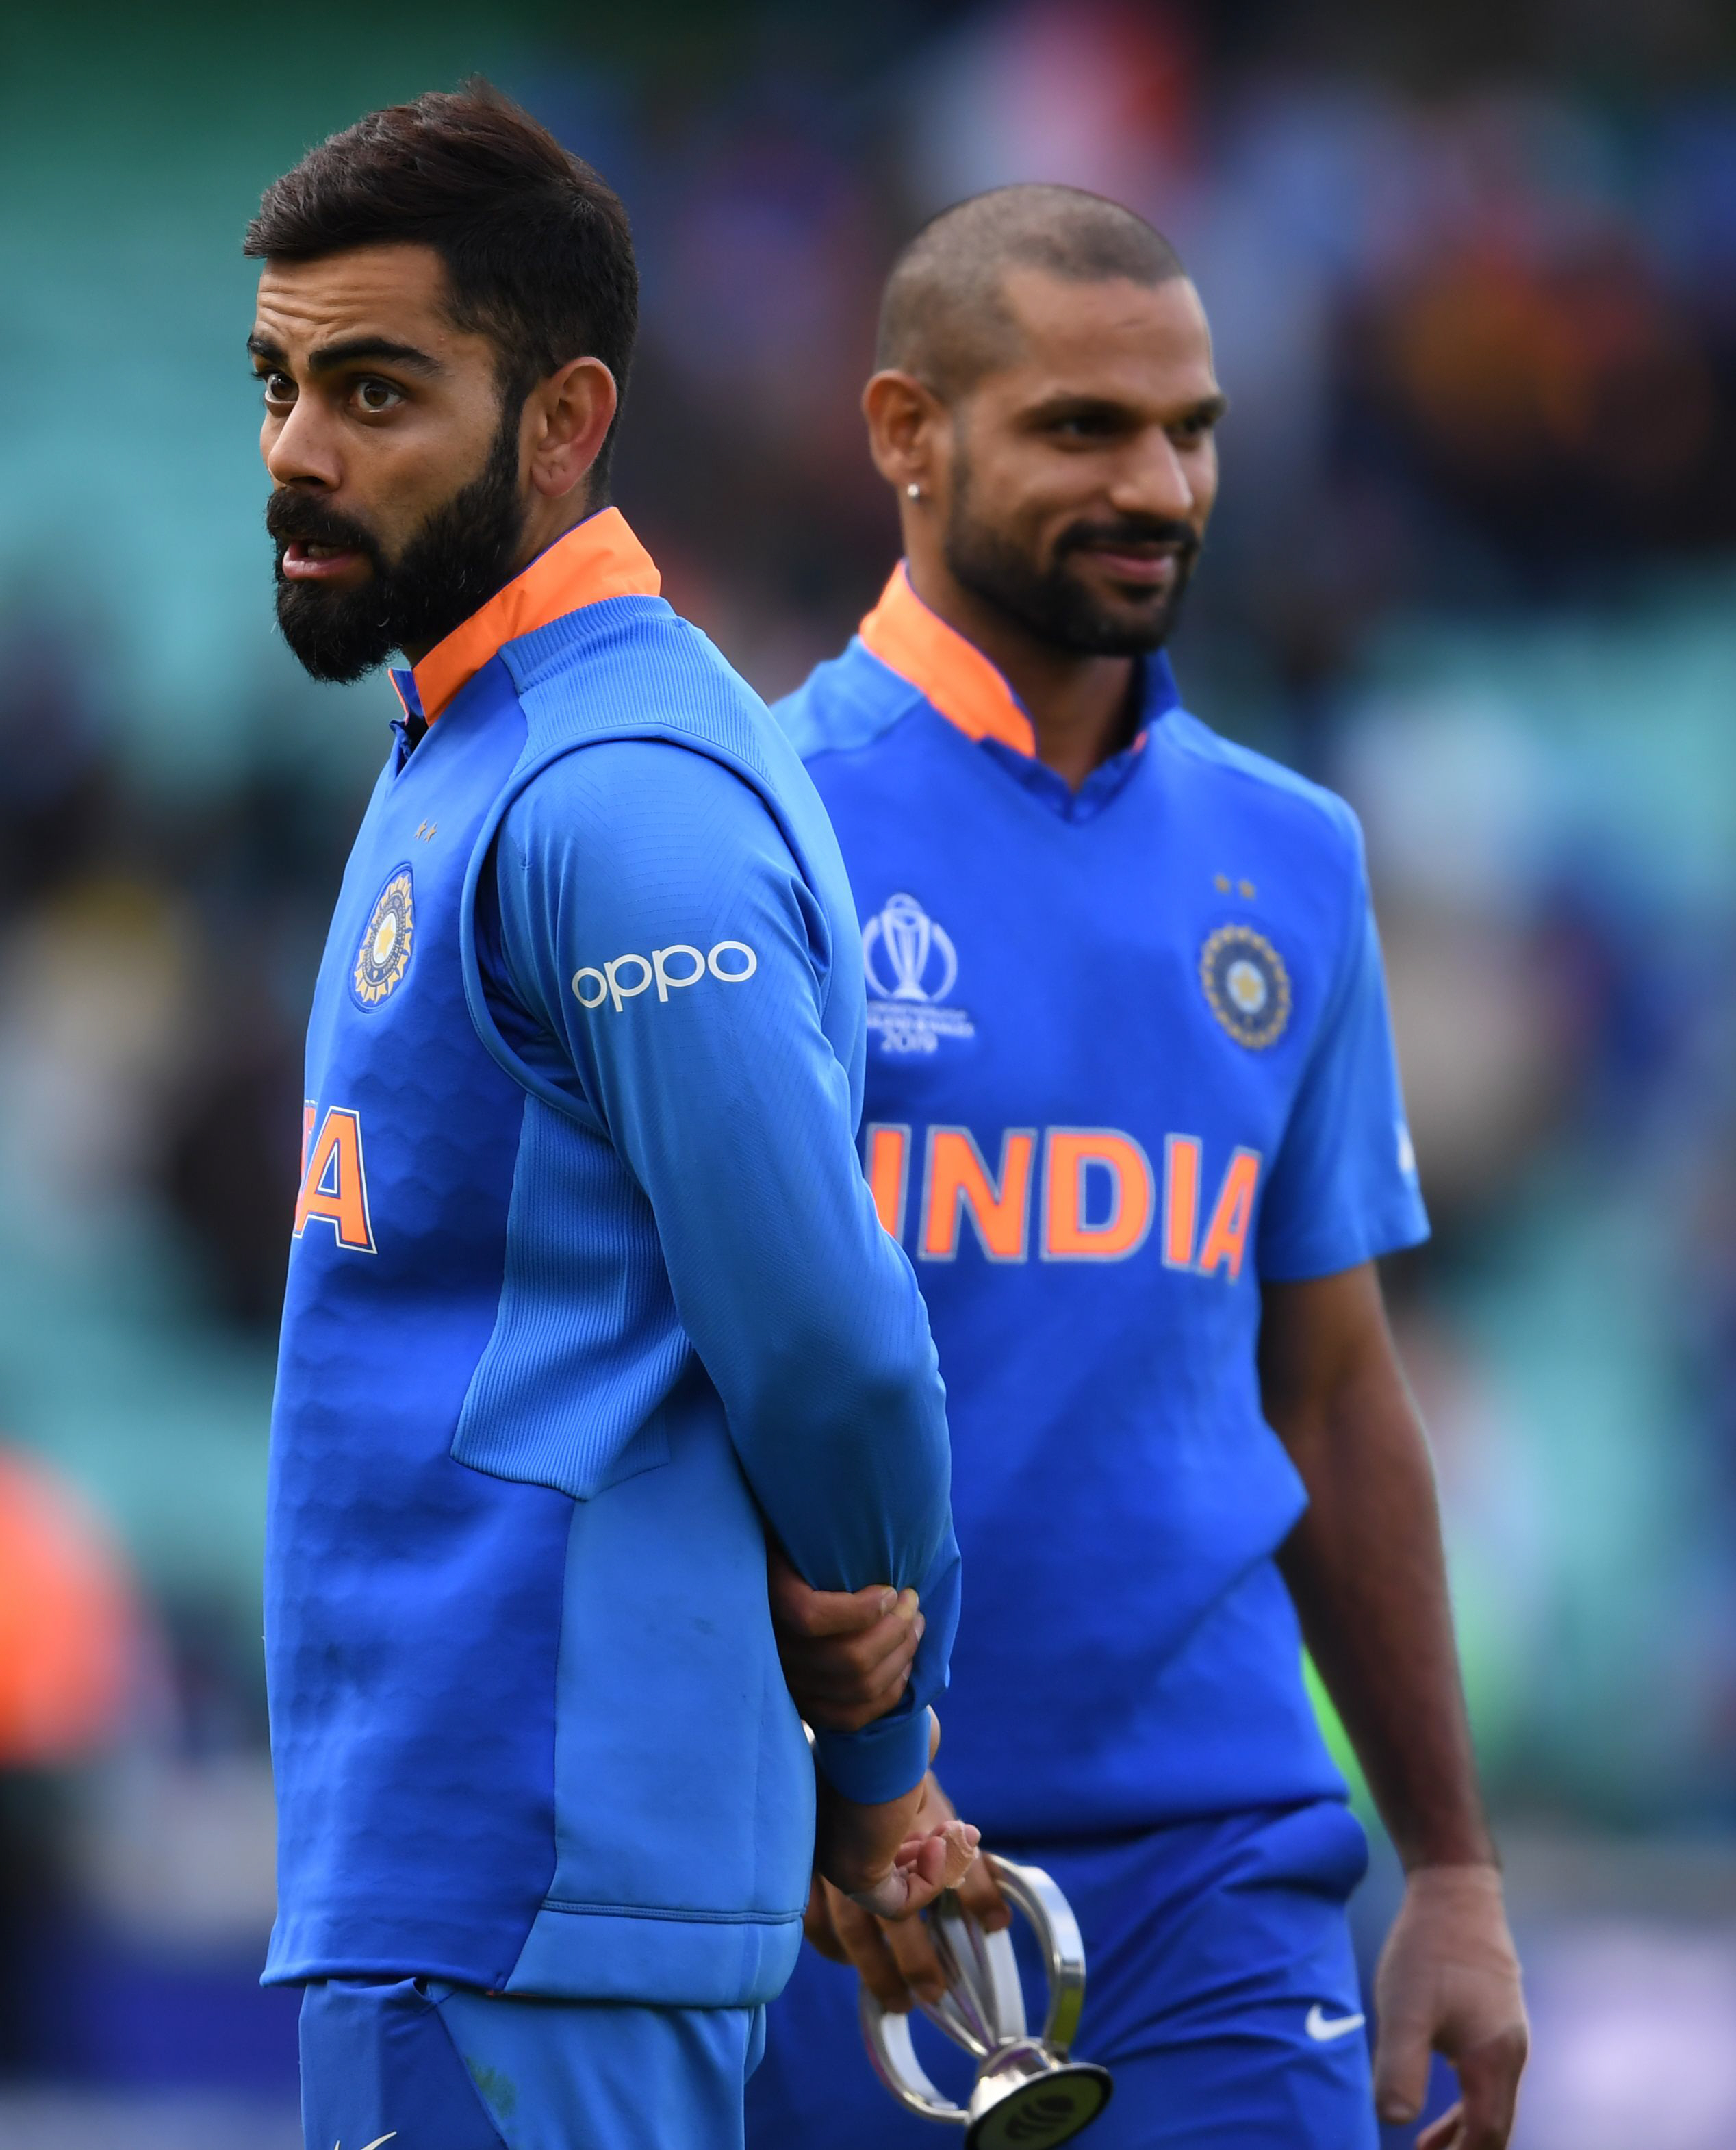 World Cup 2019: India vs Australia